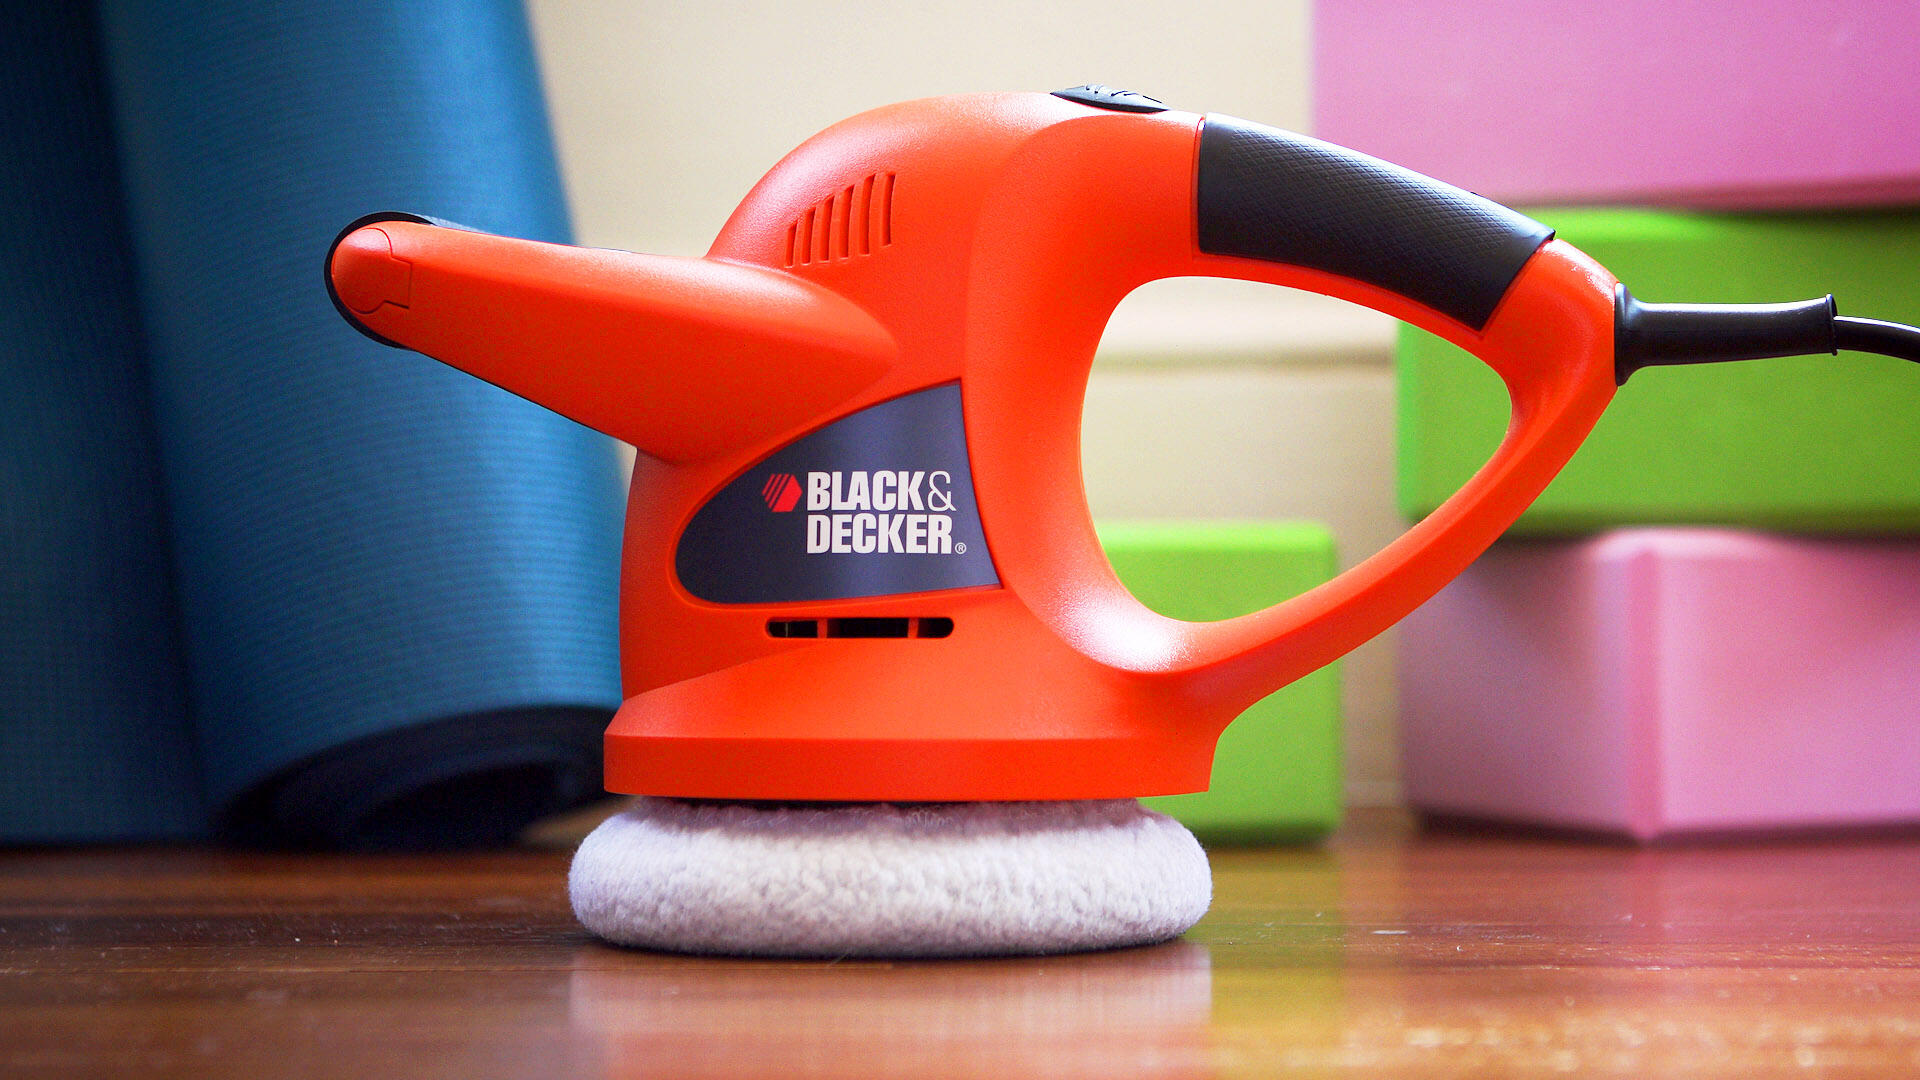 Video: This power tool may be the best affordable massage gun you can get